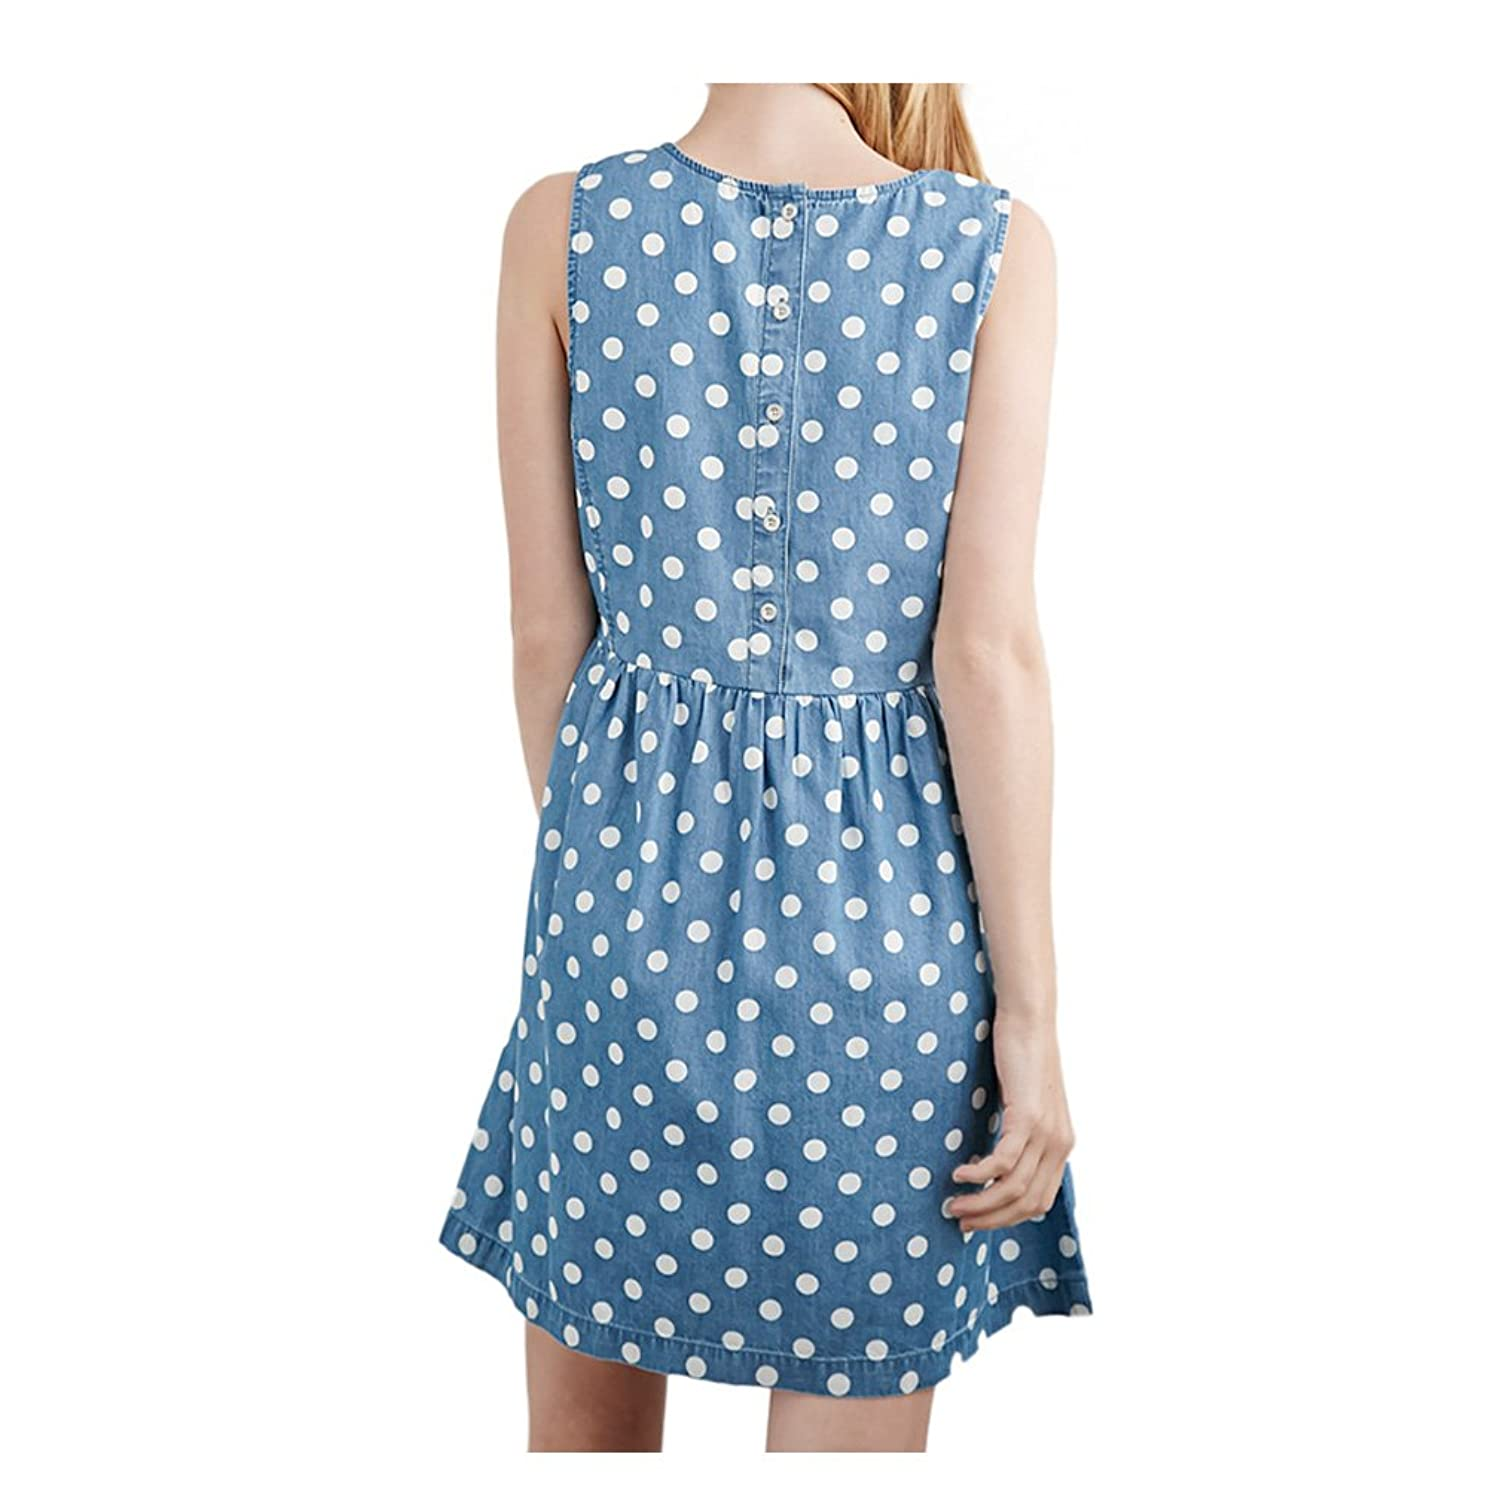 2015 Summer Denim Polka Dot Casual Dress for Women